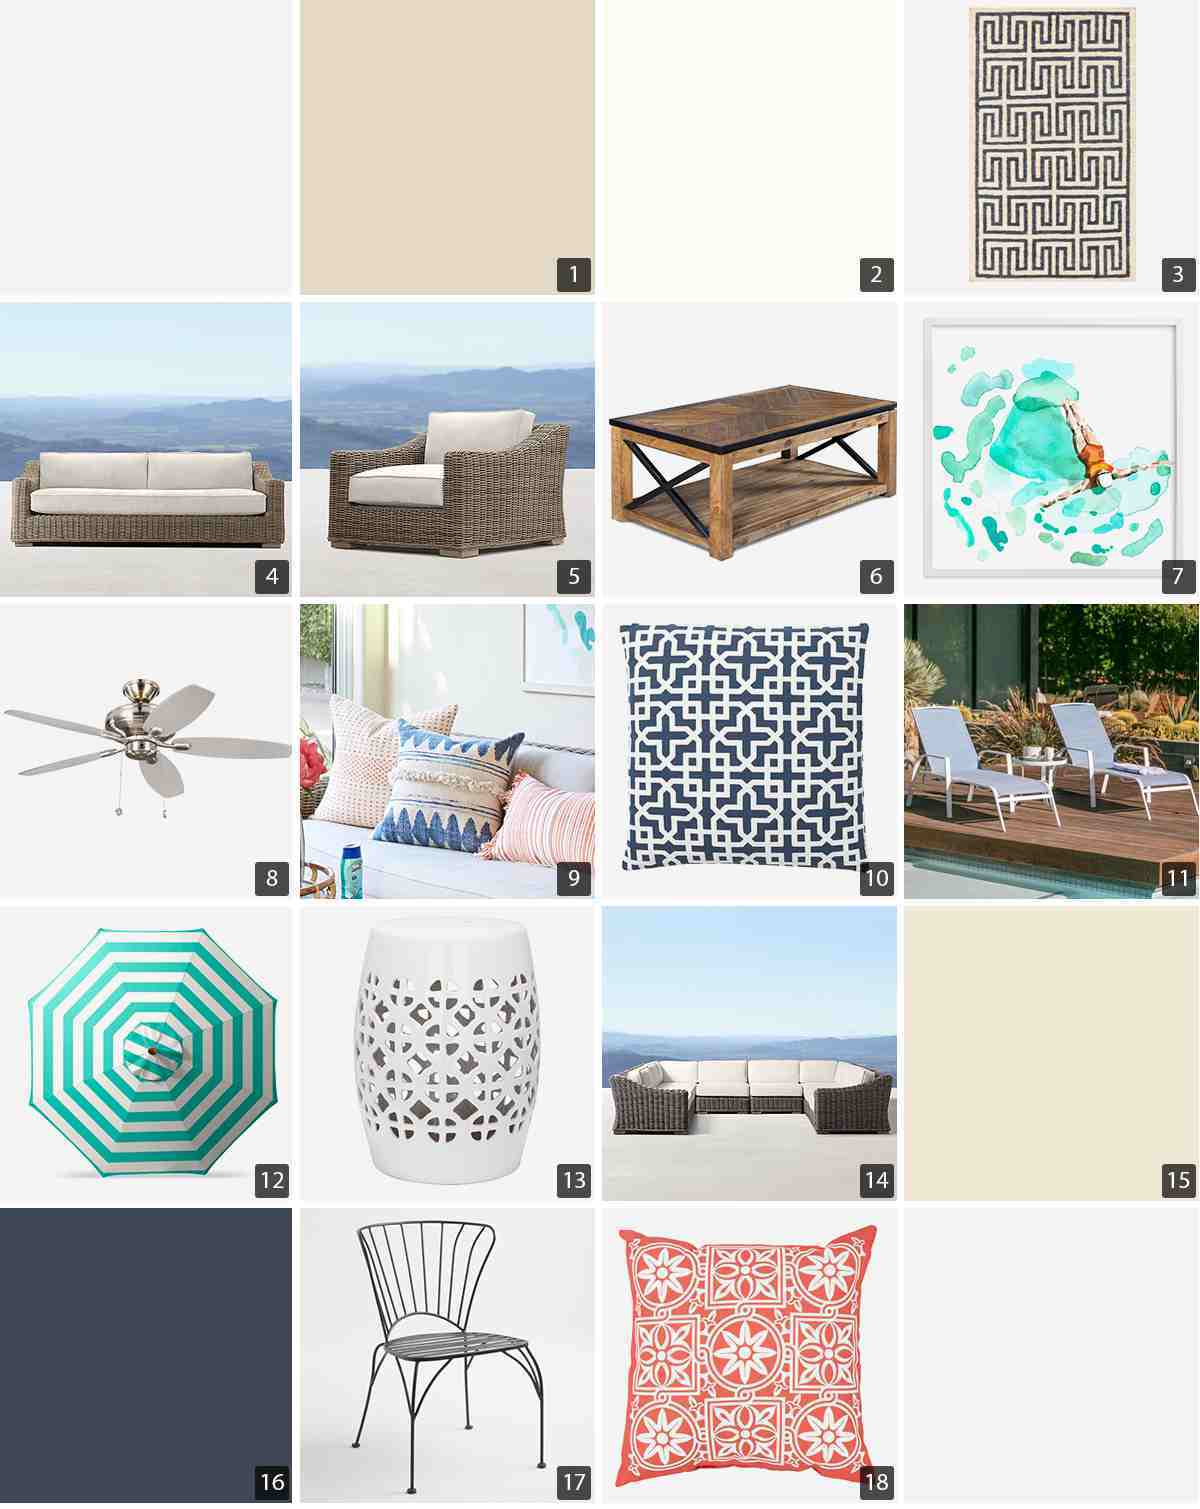 Collage of home products including paint swatches, wicker patio furniture, and blue and coral throw pillows photo